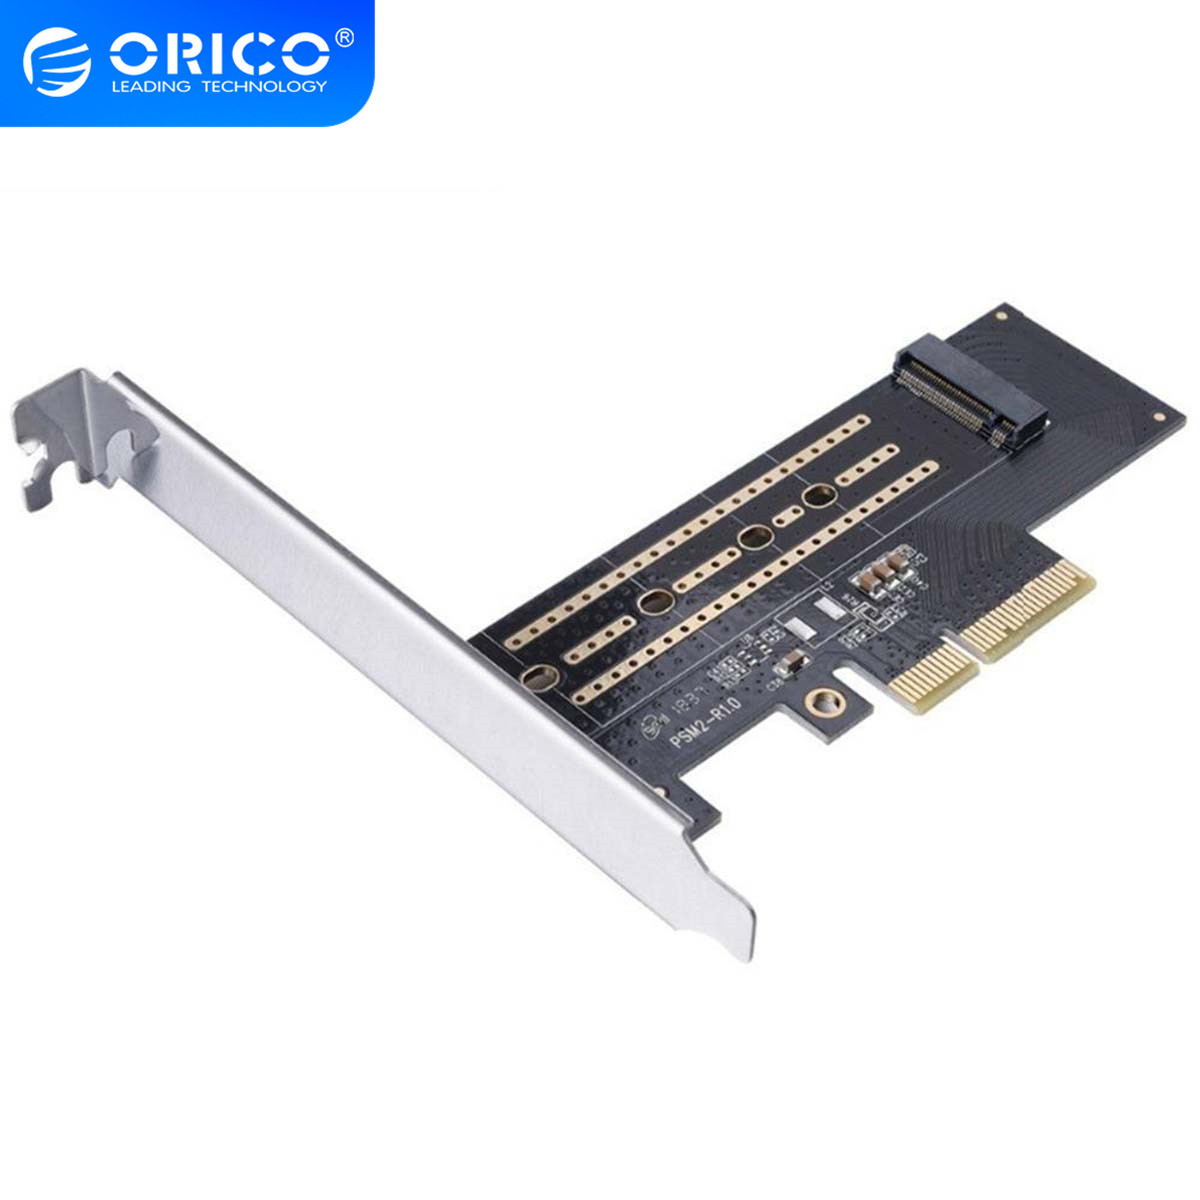 ORICO <font><b>M.2</b></font> NVME to <font><b>PCI</b></font>-E 3.0 <font><b>X4</b></font> Expansion Card for Laptop Support Windows 10 image